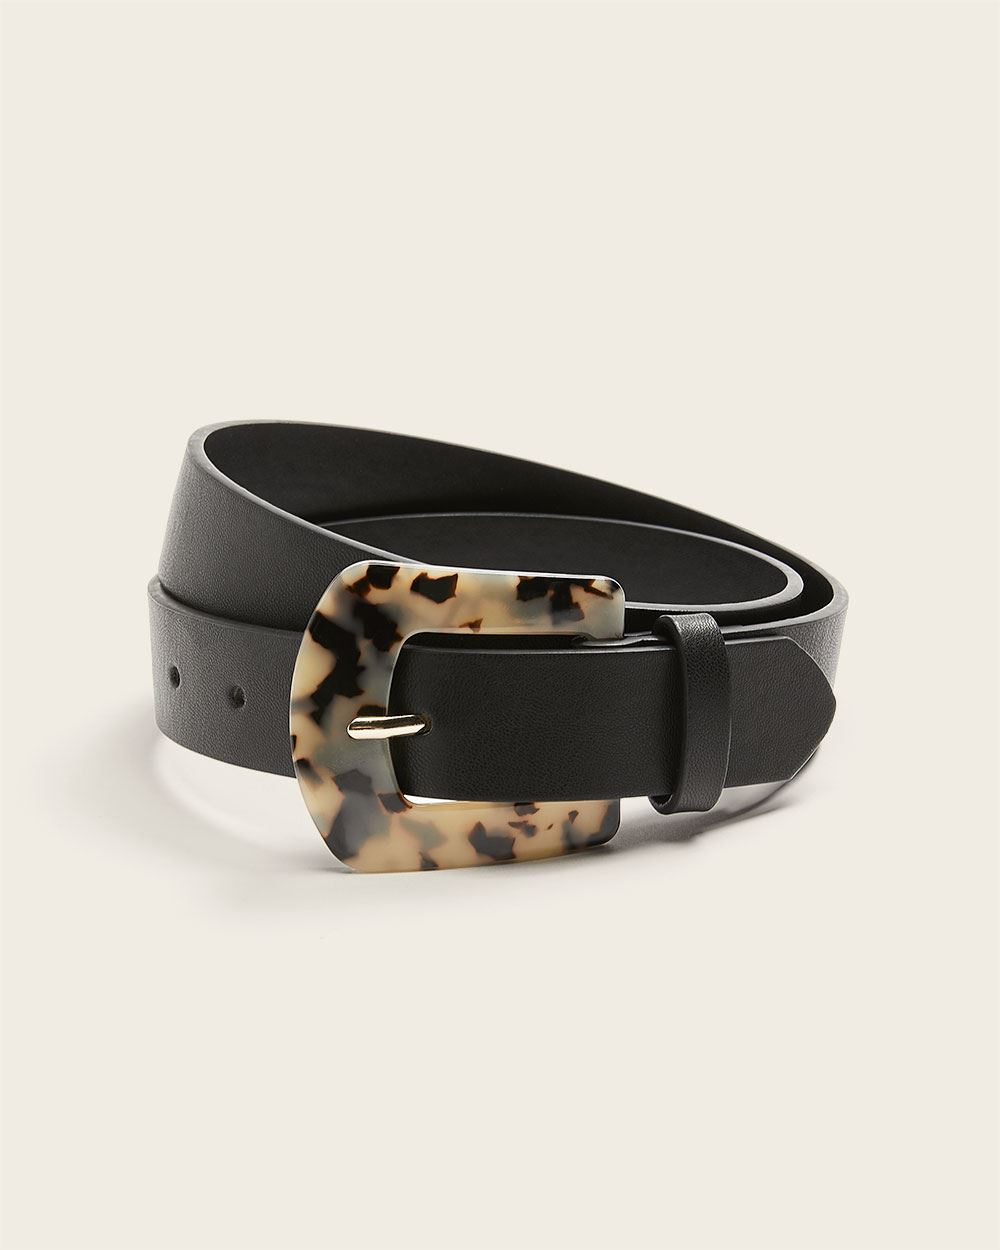 Faux leather belt with tortoise shell buckle